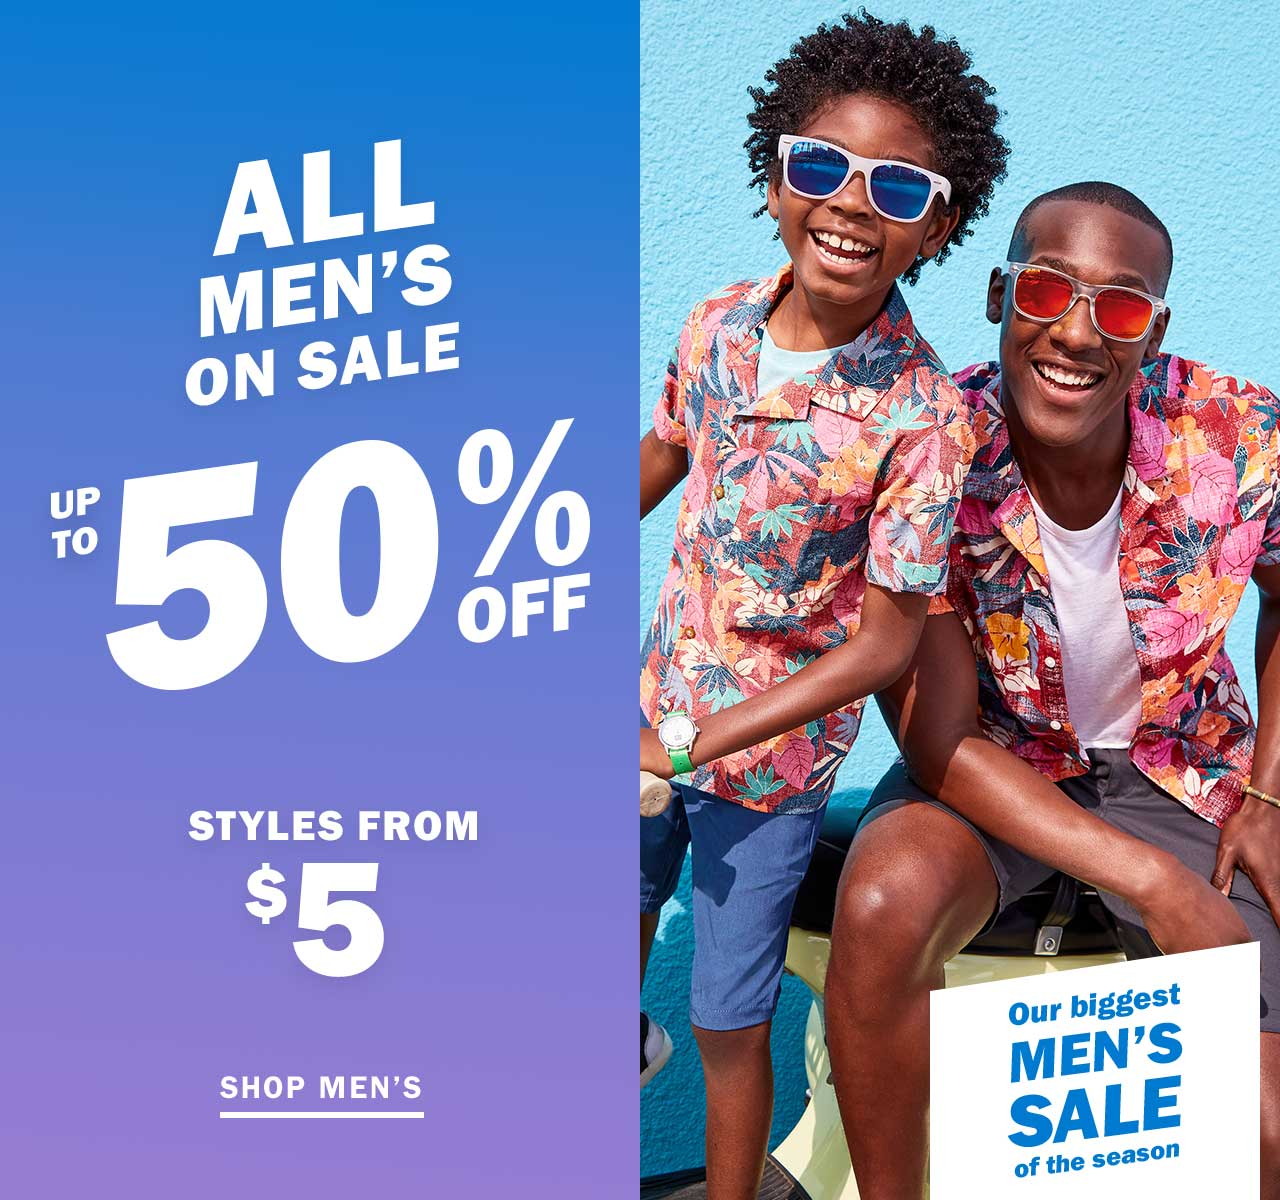 ALL MEN'S ON SALE | UP TO 50% OFF | SHOP MEN'S